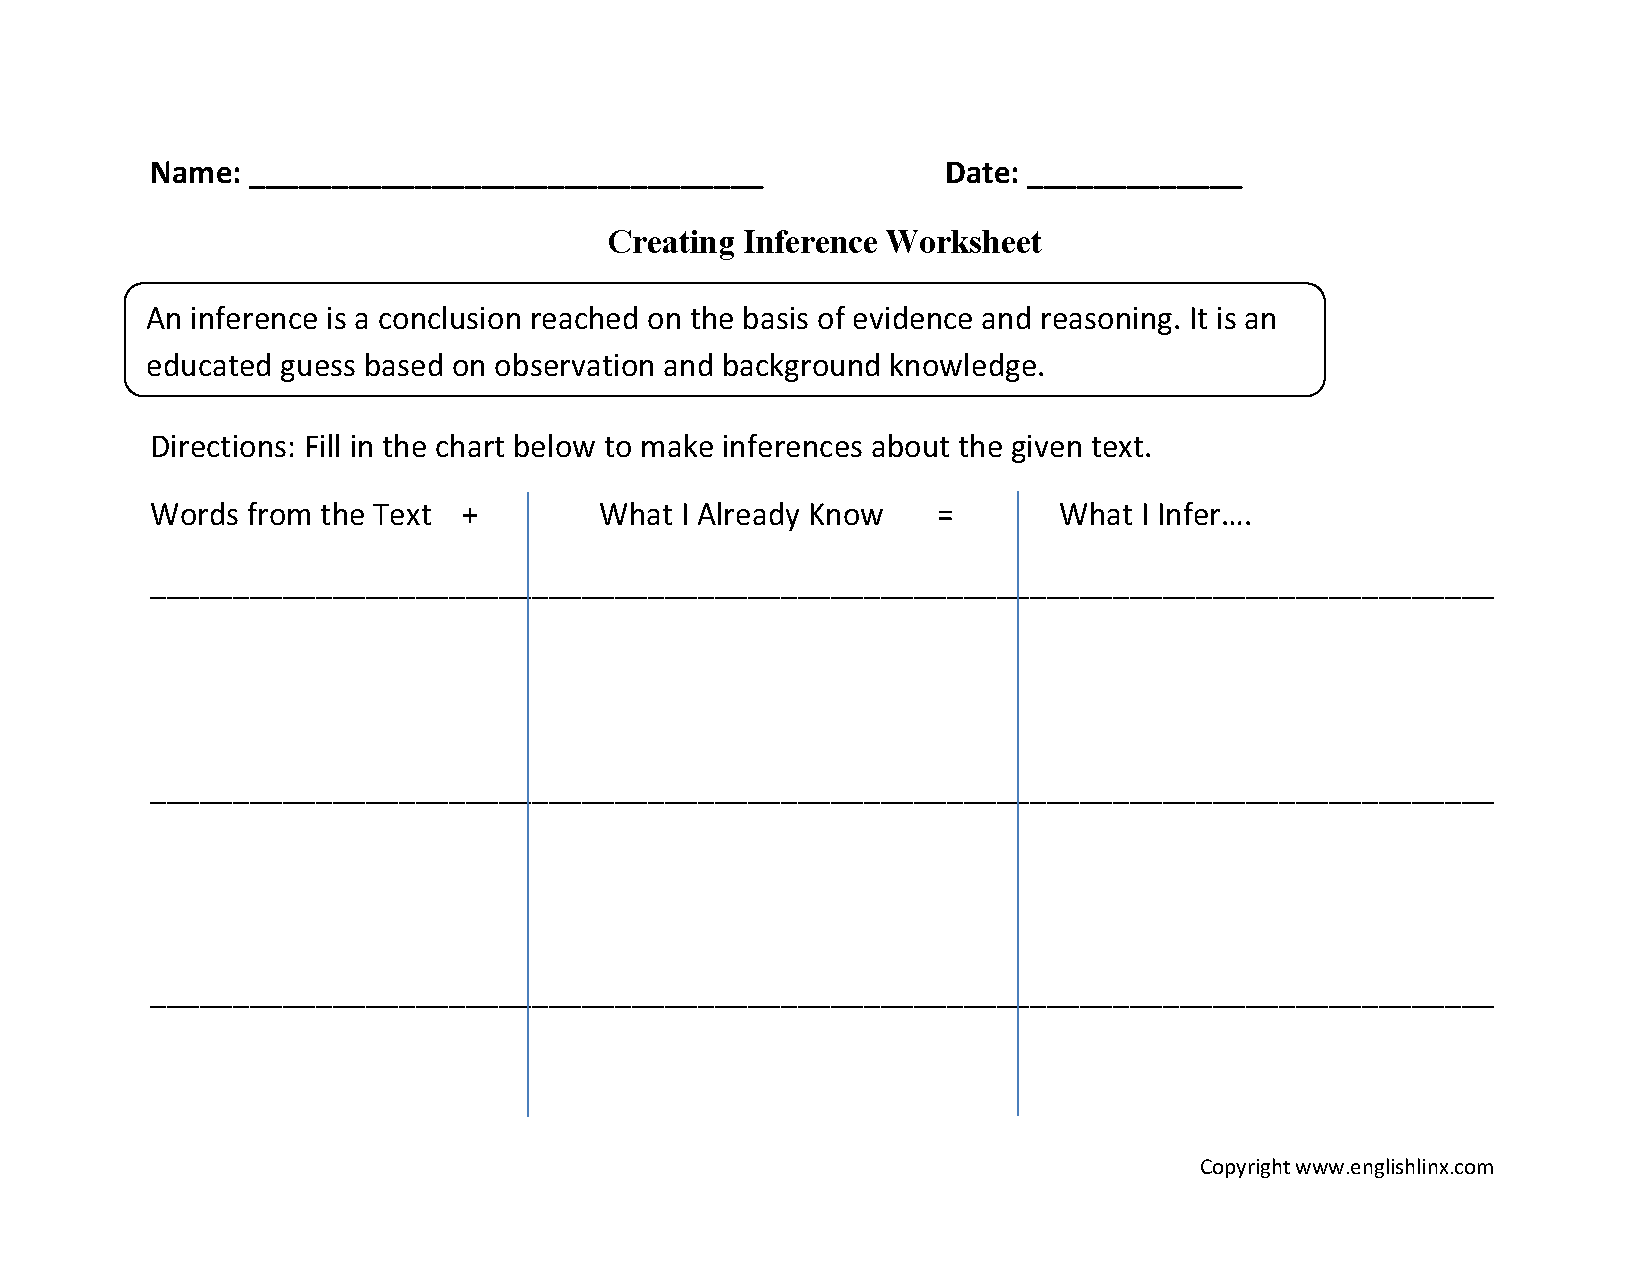 Worksheet On Making Inferences For Grade 3